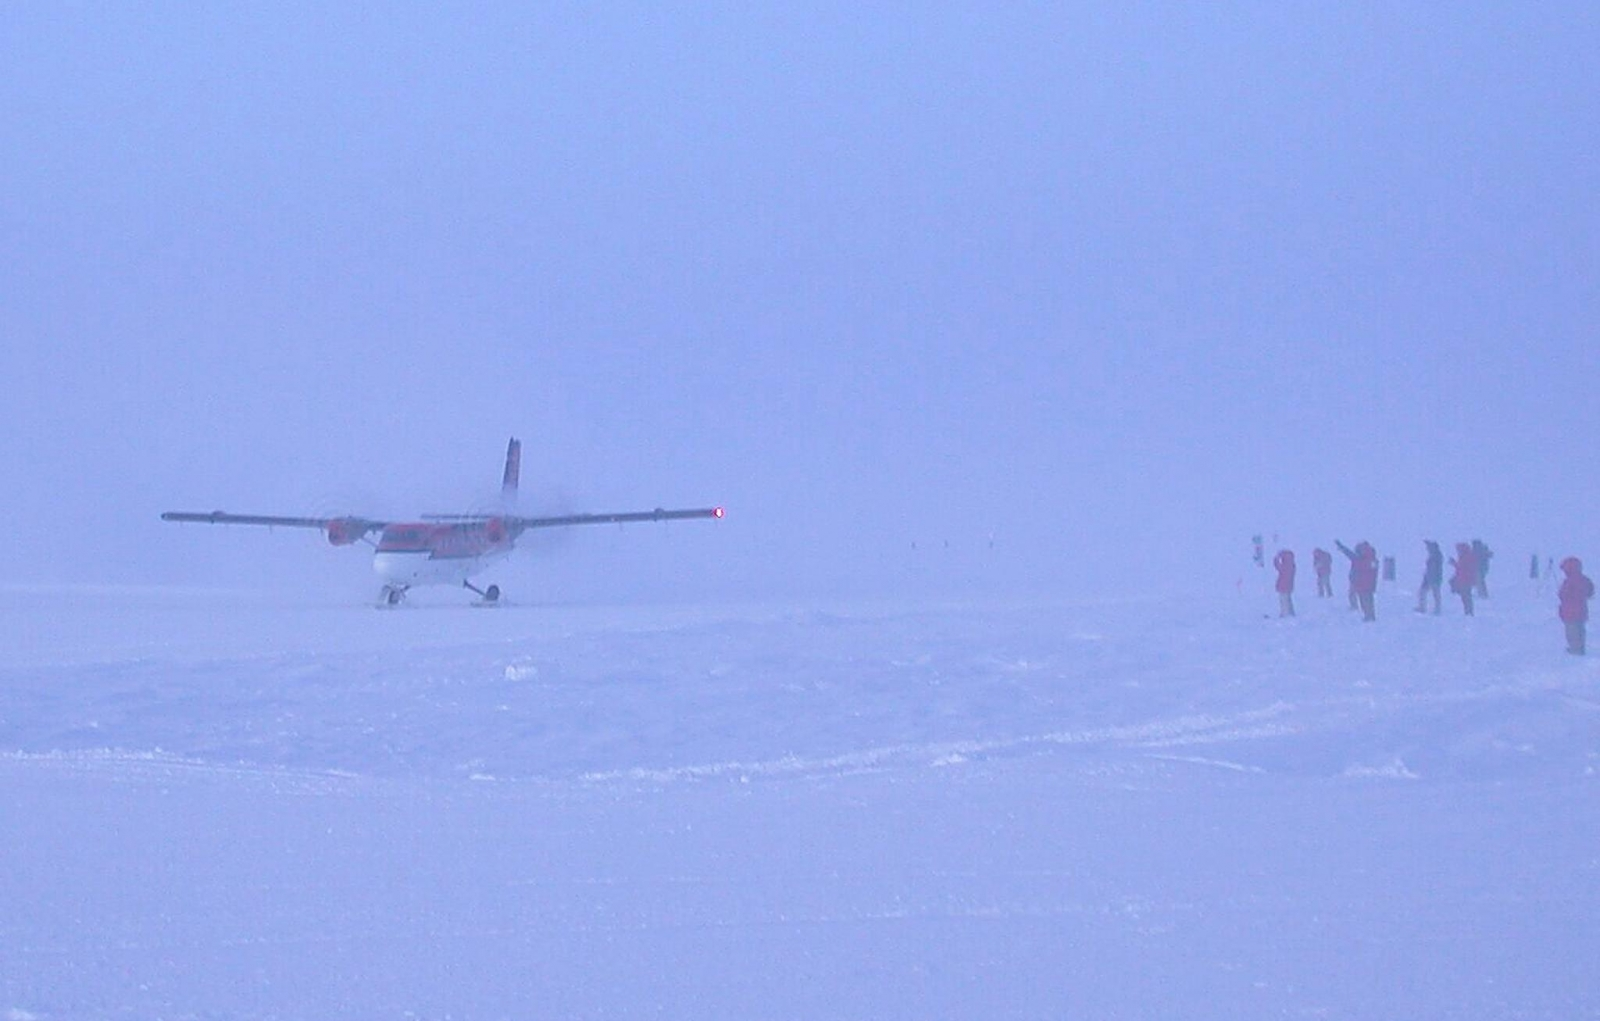 Candian Plane lands at South Pole